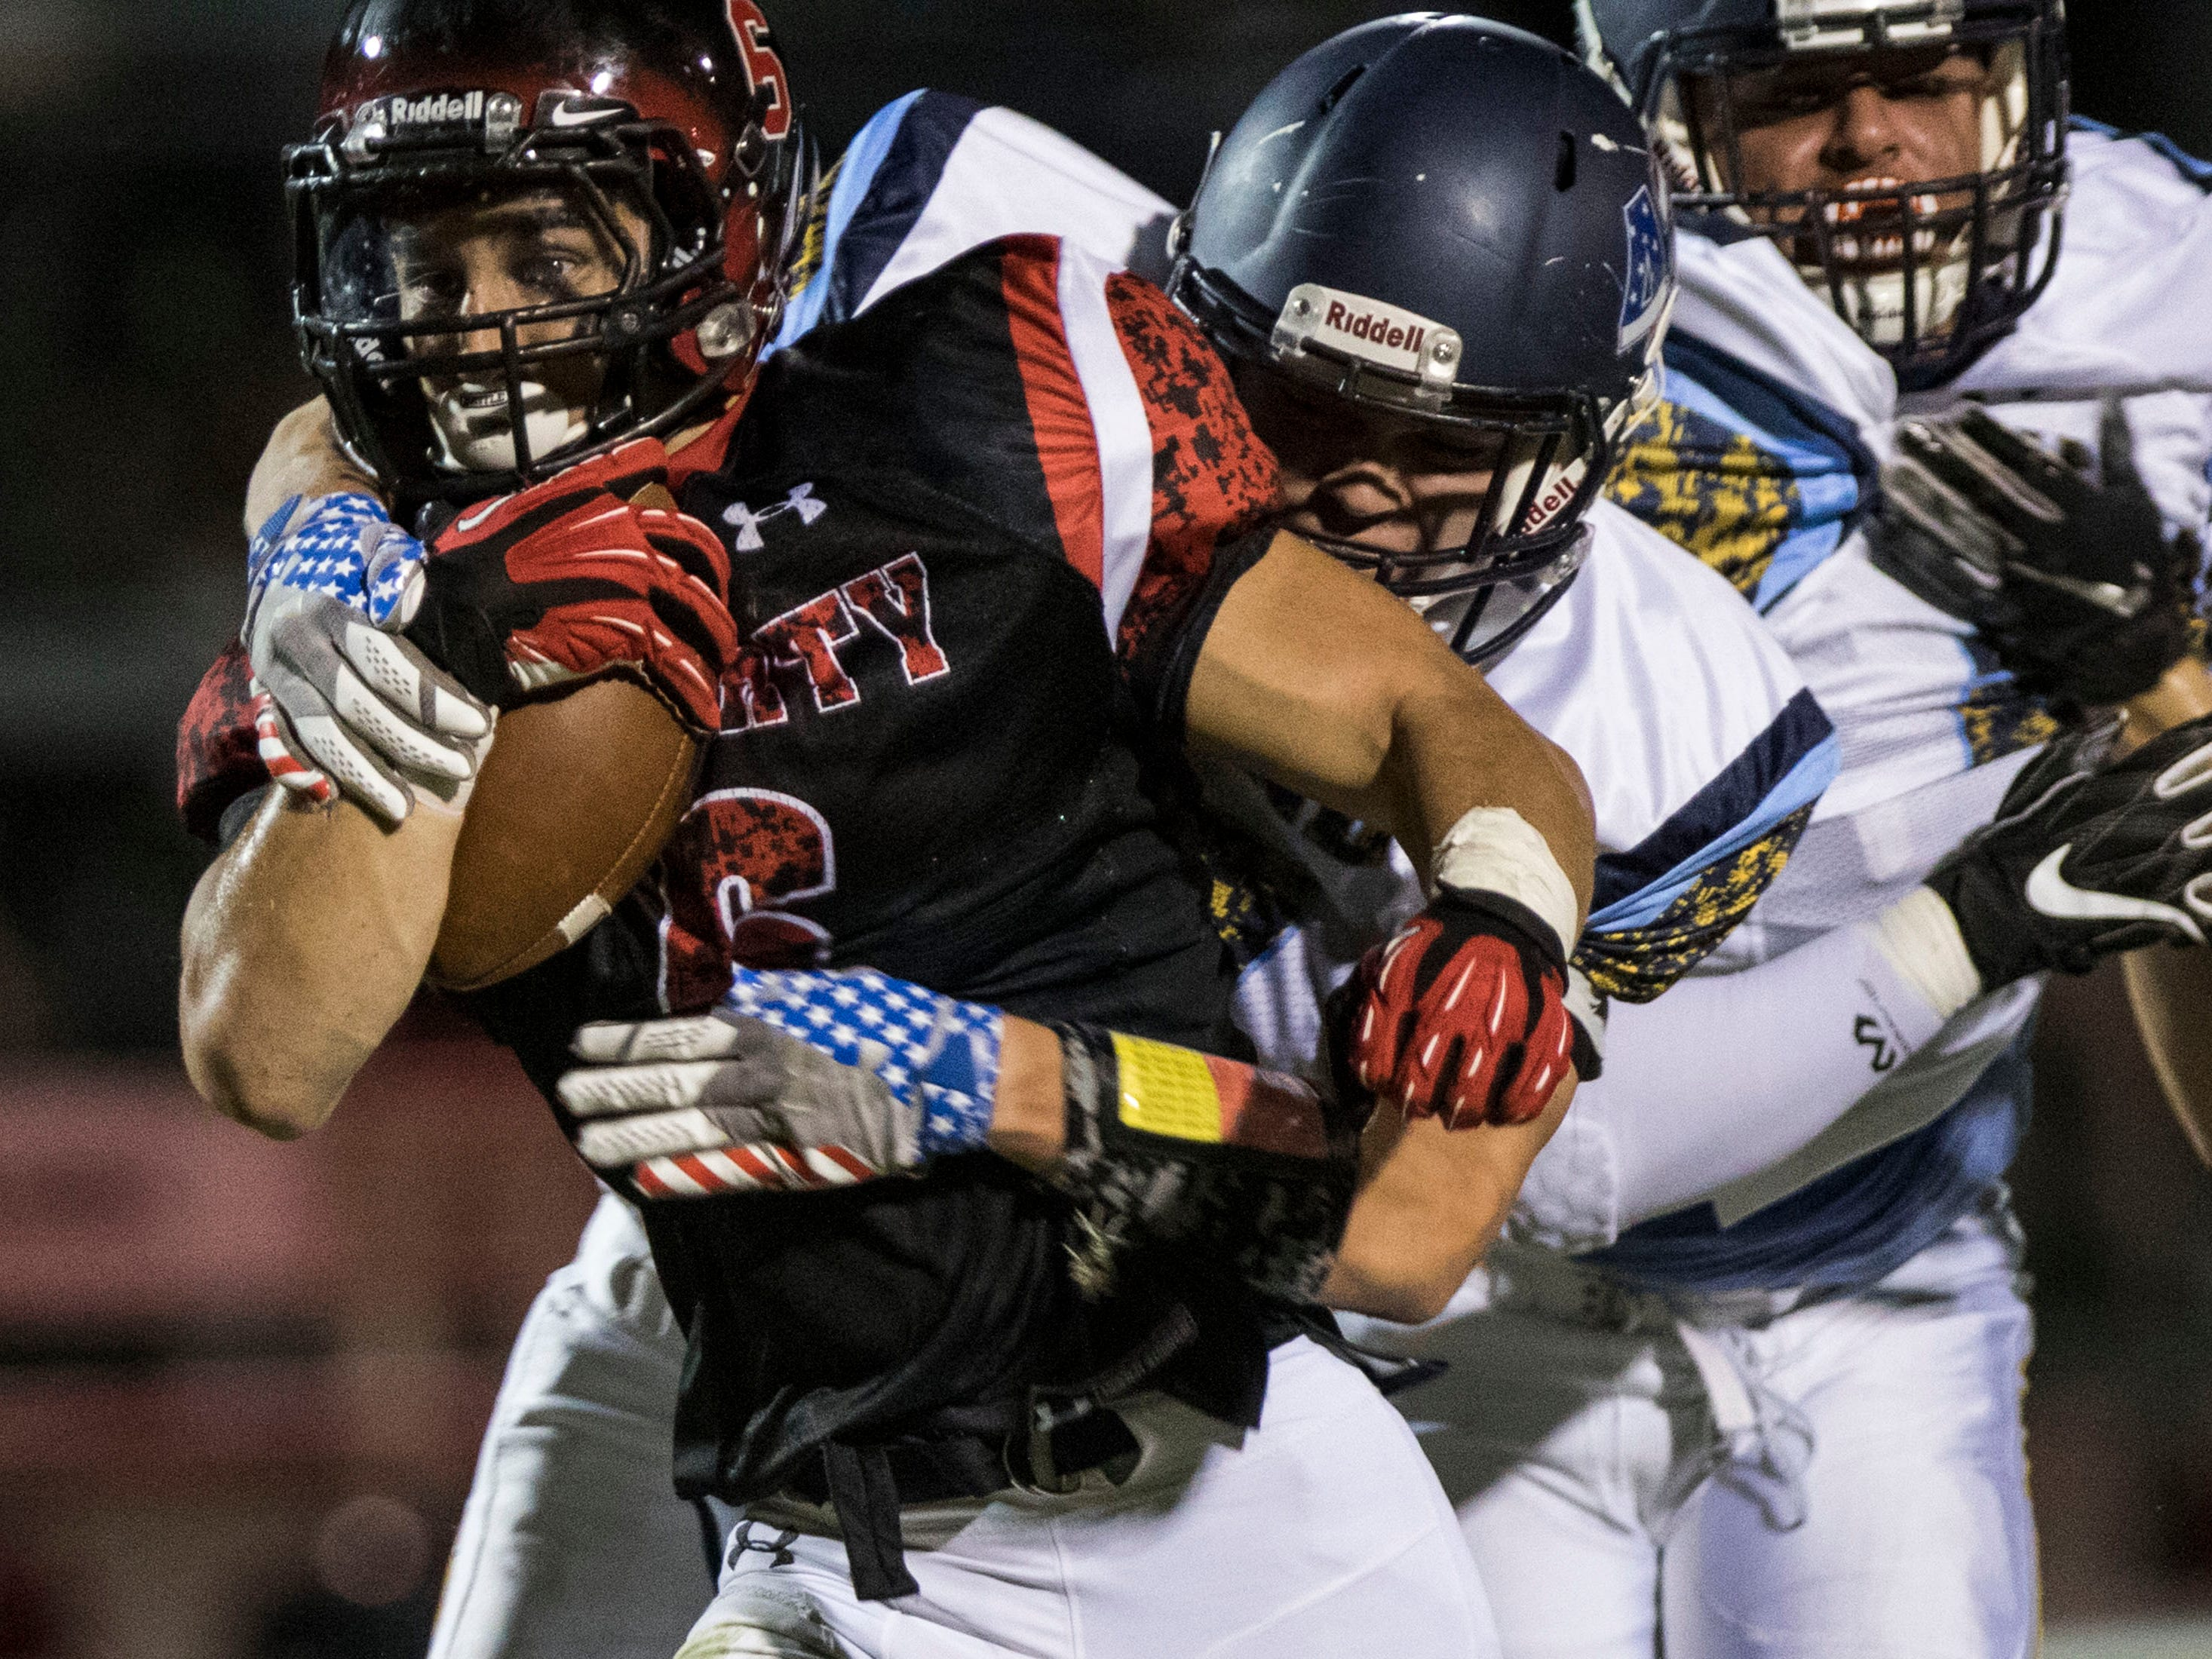 Liberty's Jett Kinsch gets wrapped up by Leland's Preston Gook during their game in Peoria Friday, Sept.14, 2018. #azhsfb